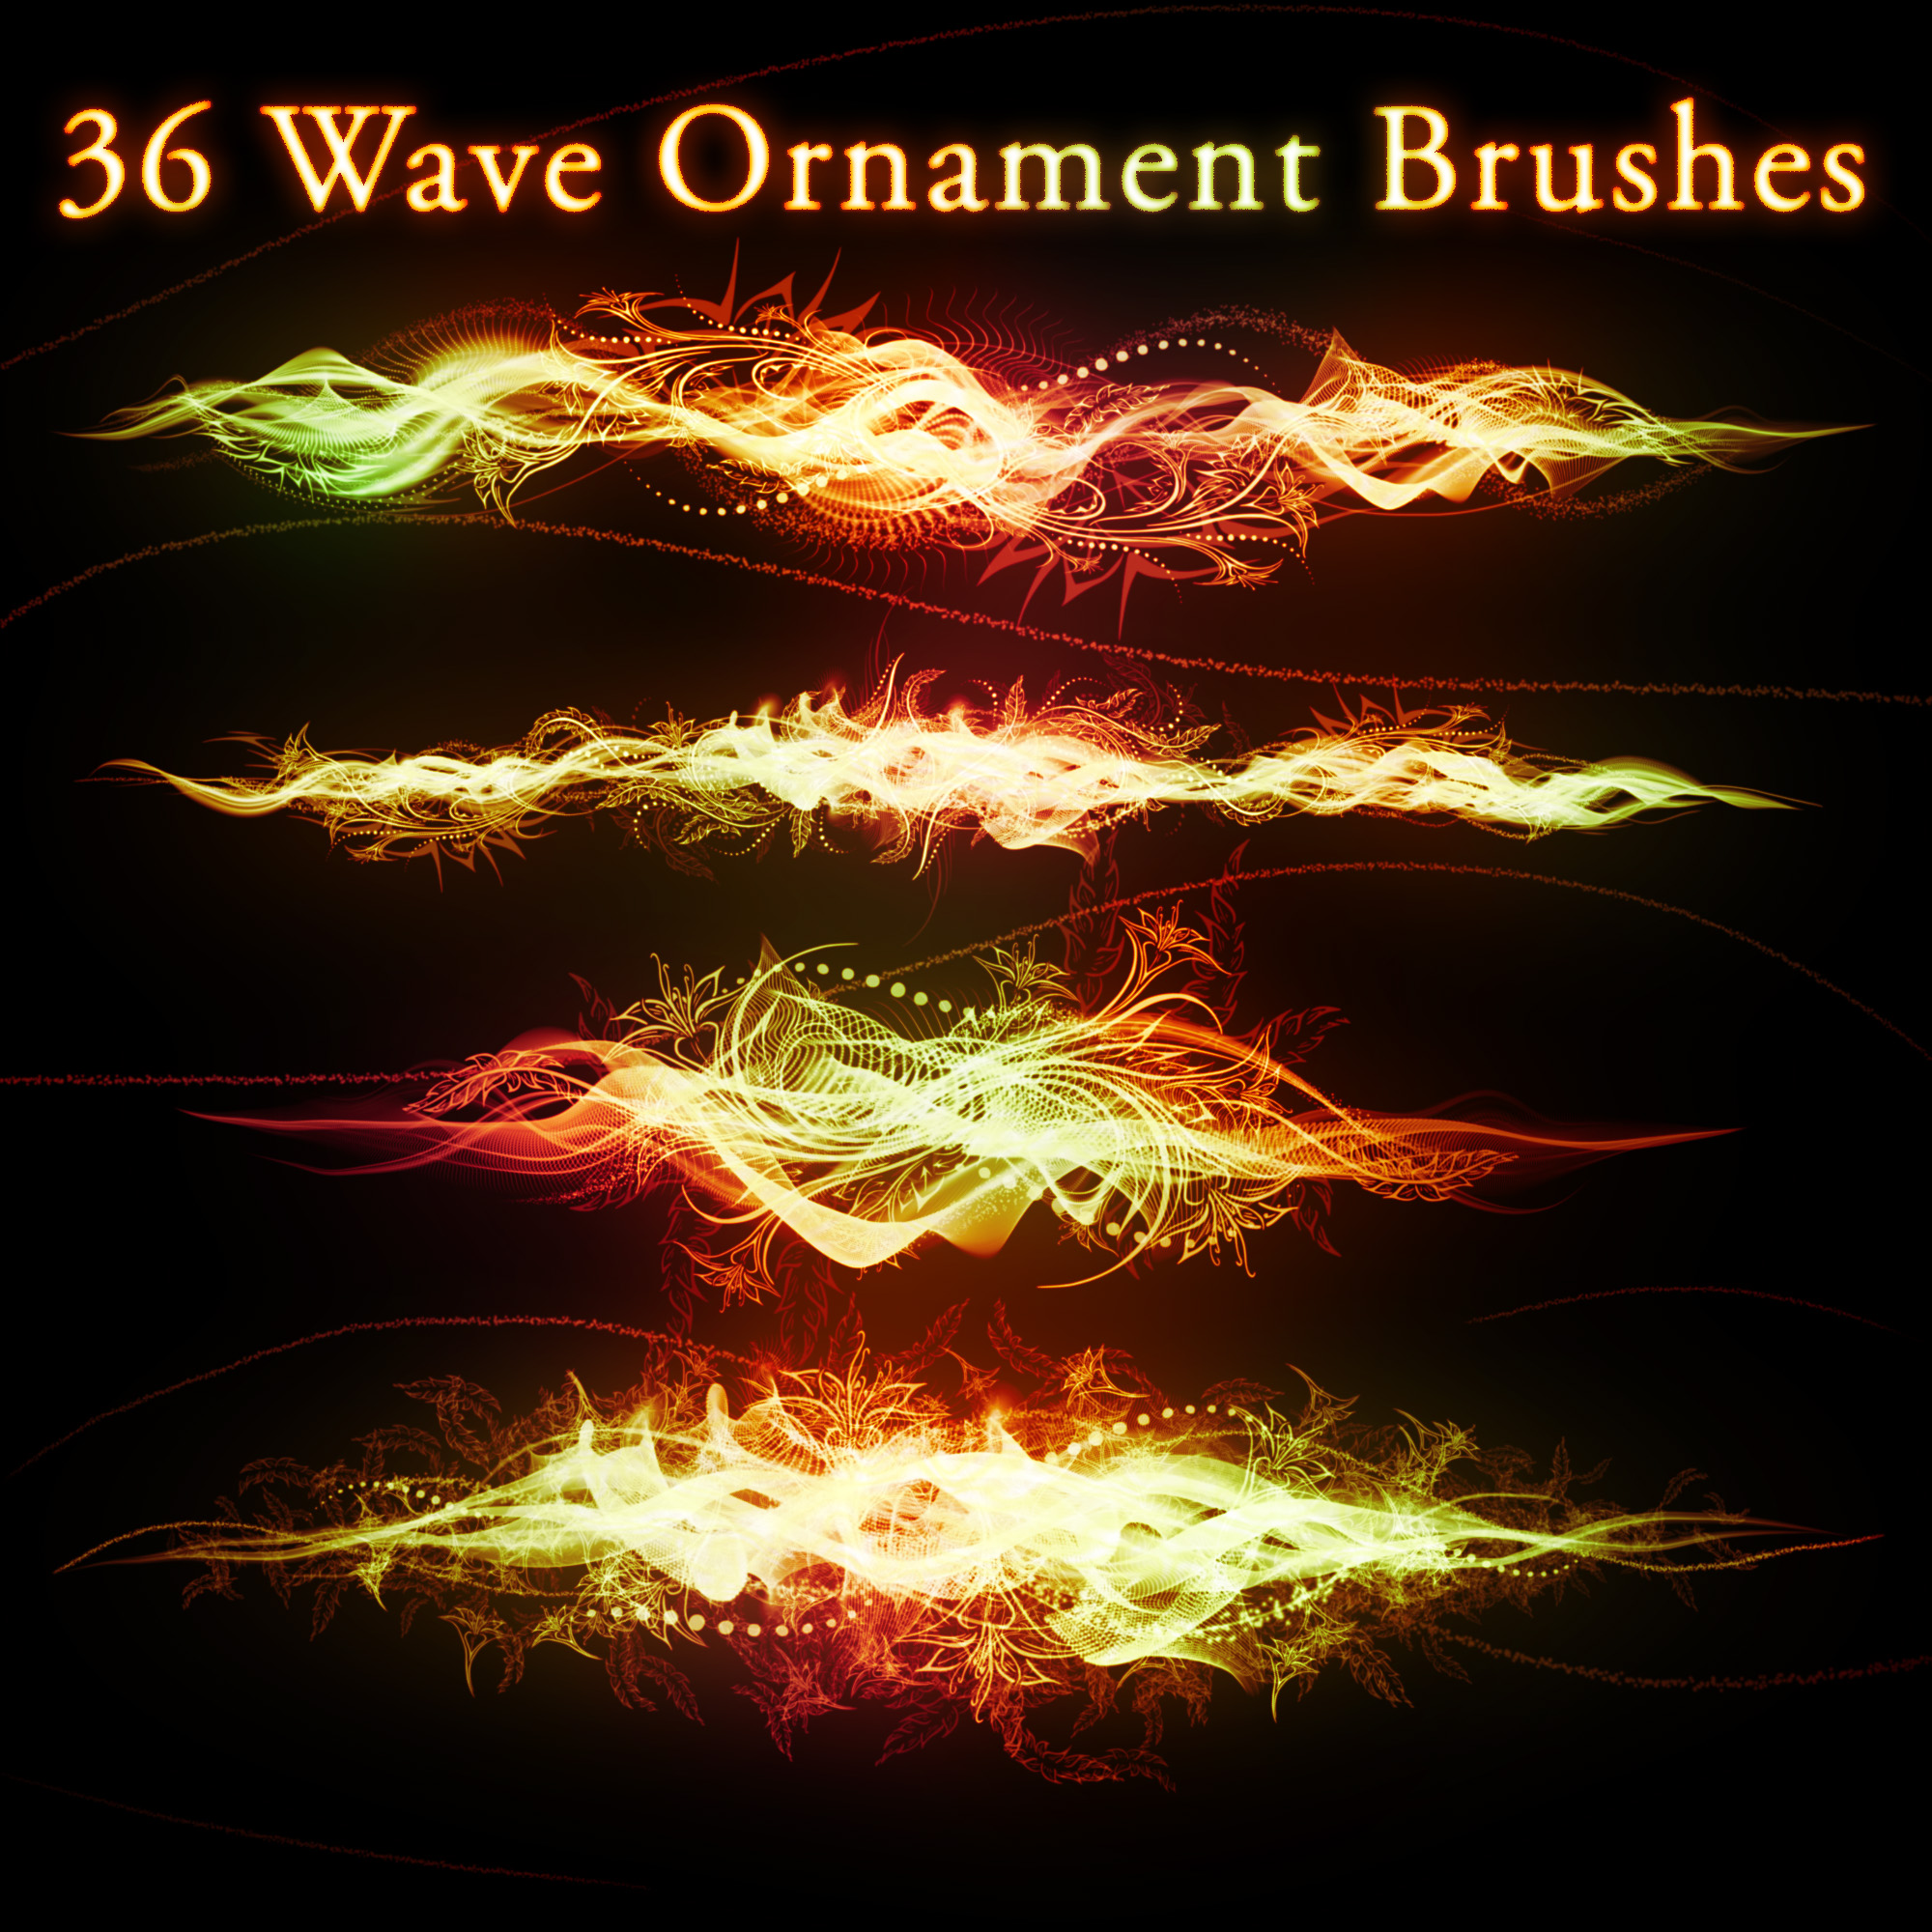 36 Wave Ornament Brushes